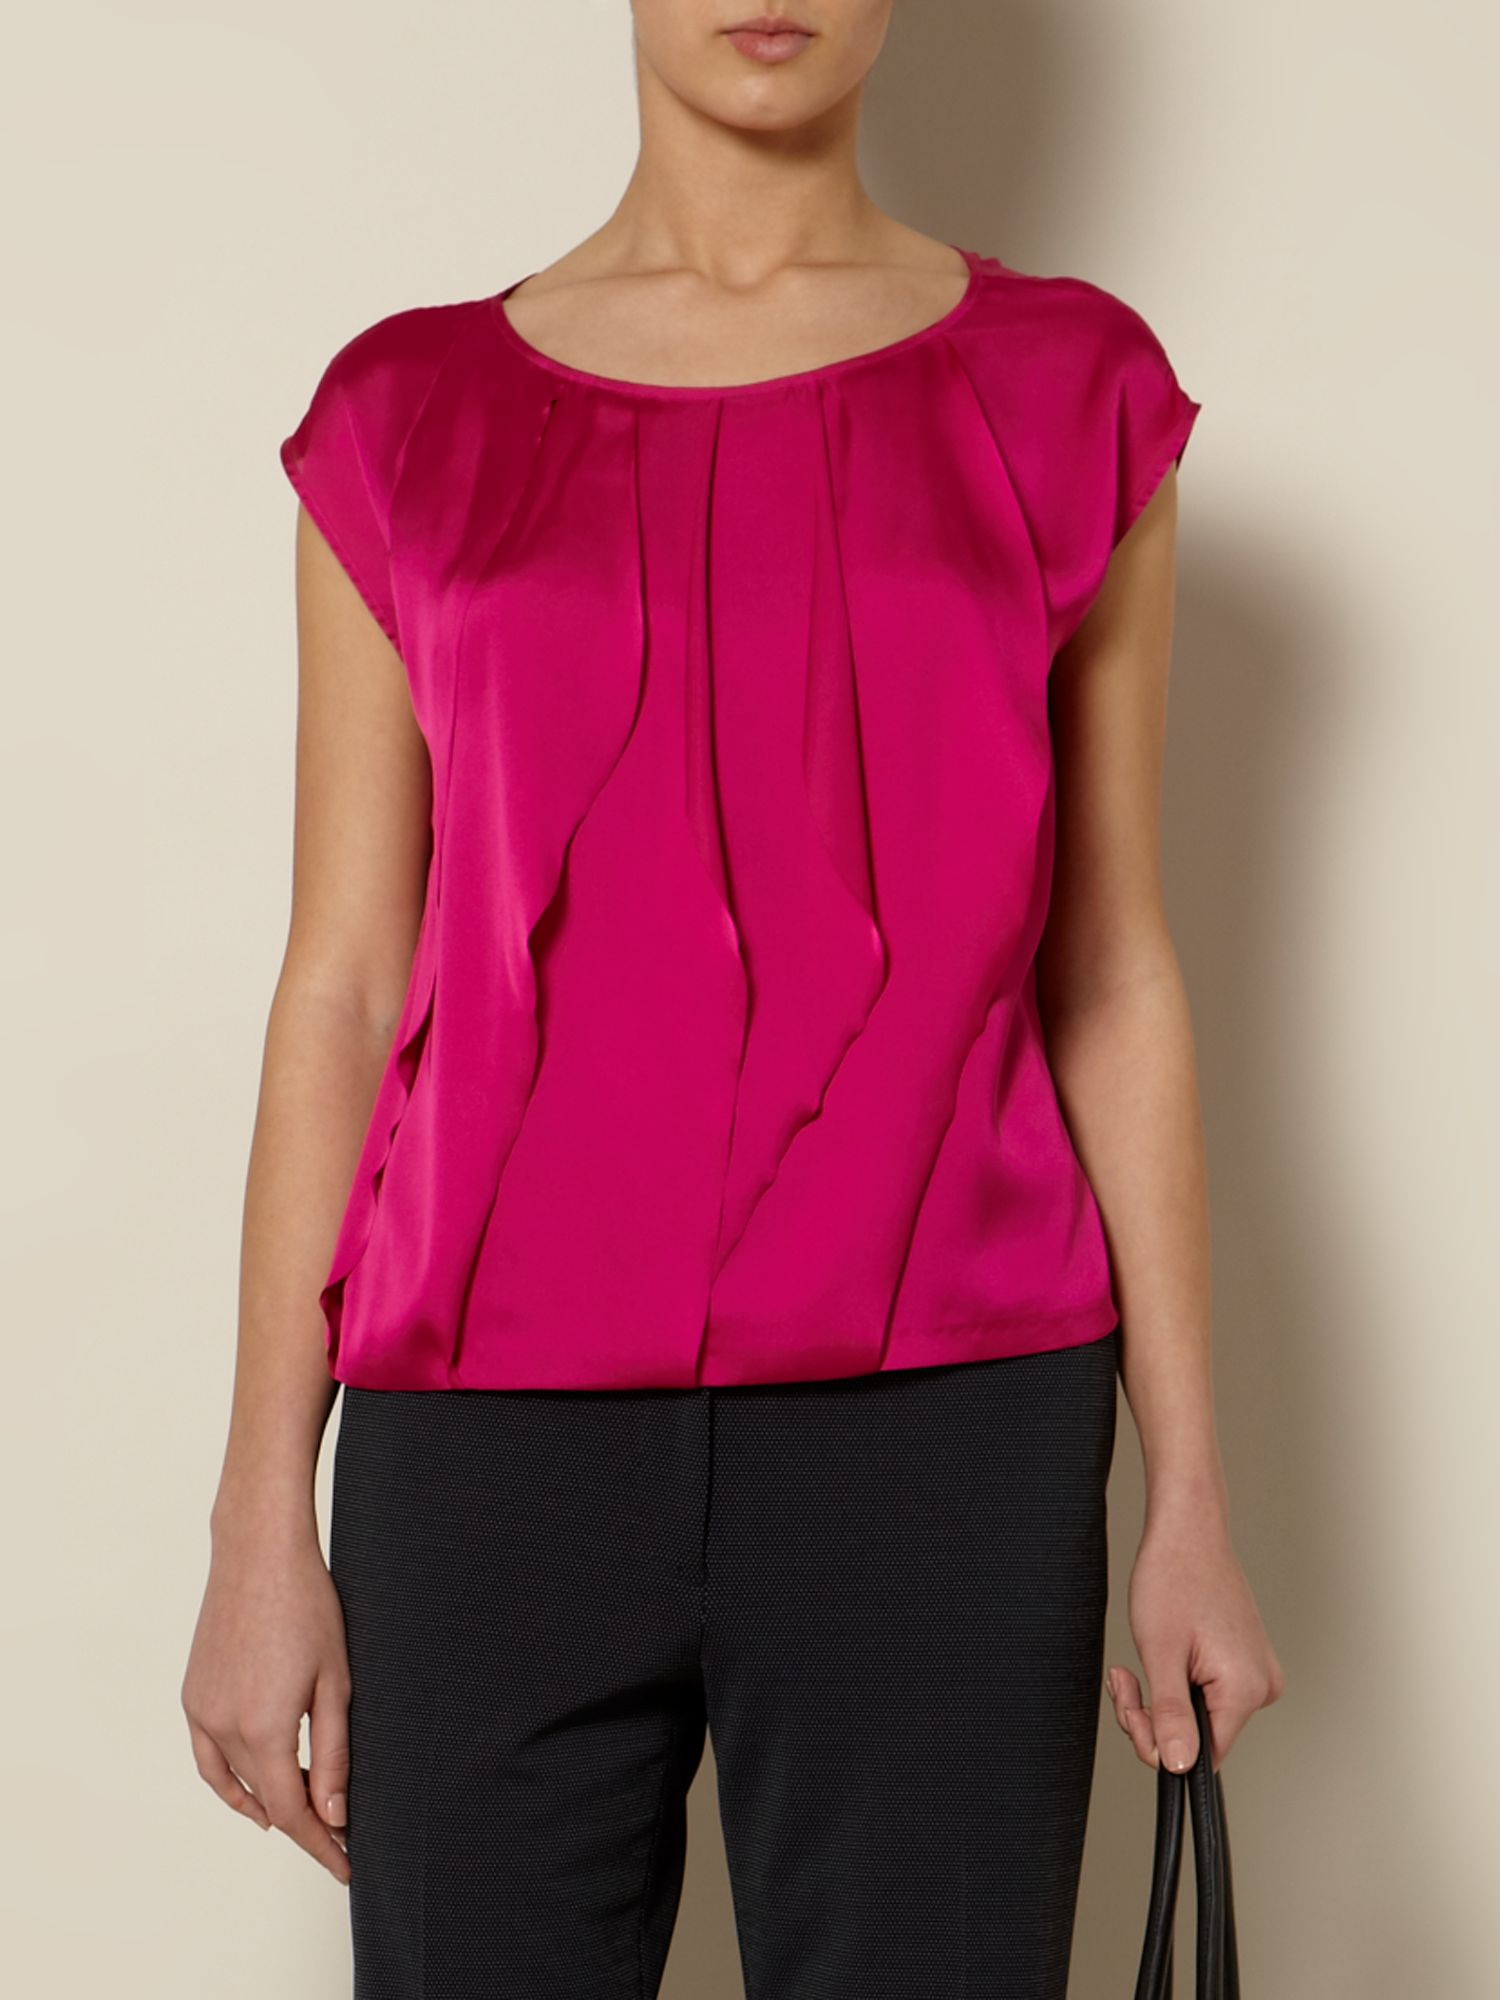 Waterfall front woven top